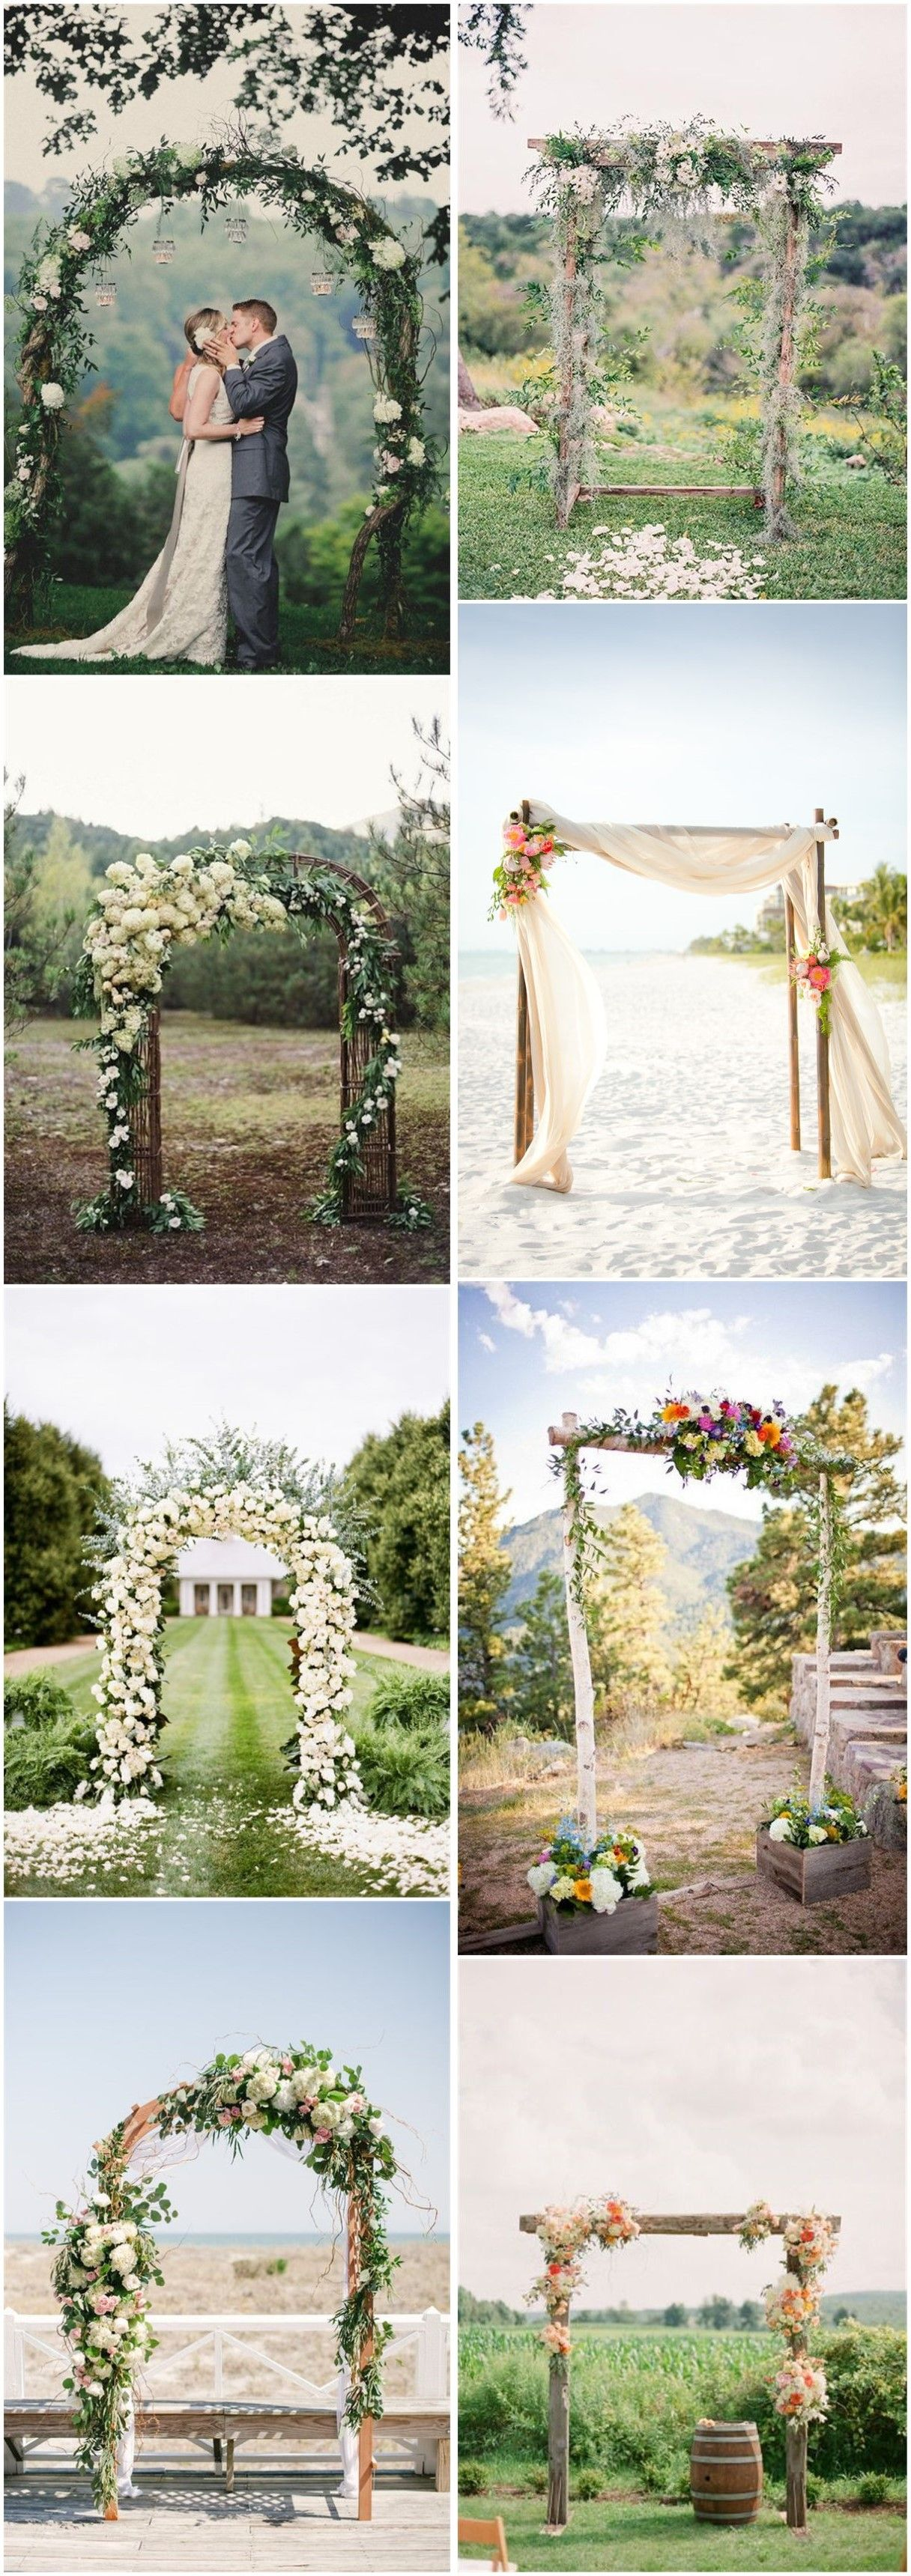 simple outdoor wedding ideas for summer%0A Rustic Weddings       DIY Floral Wedding Arch Decoration Ideas        See more